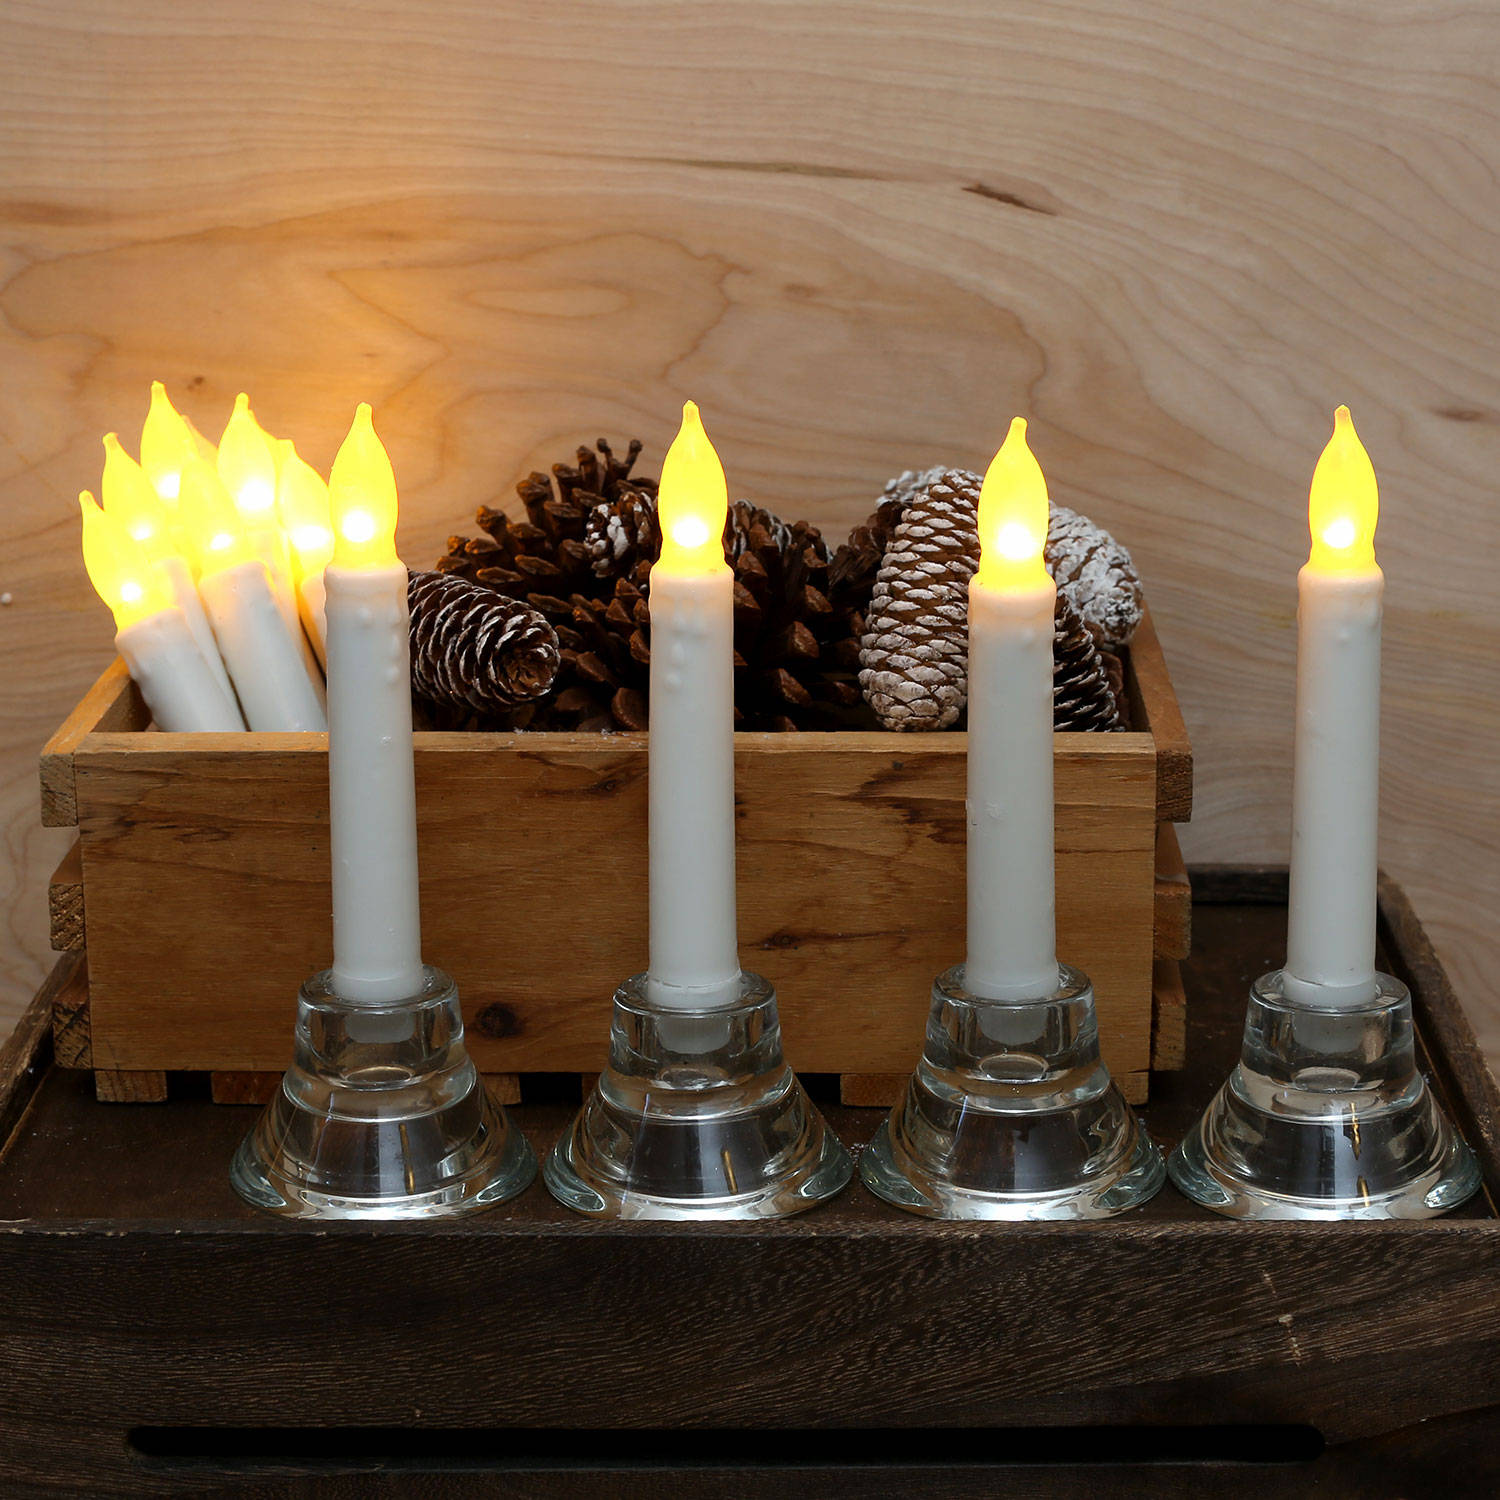 Lit Decor Flameless Candles Tapers Cyrus Flameless Wax Taper Candles Set Of 12